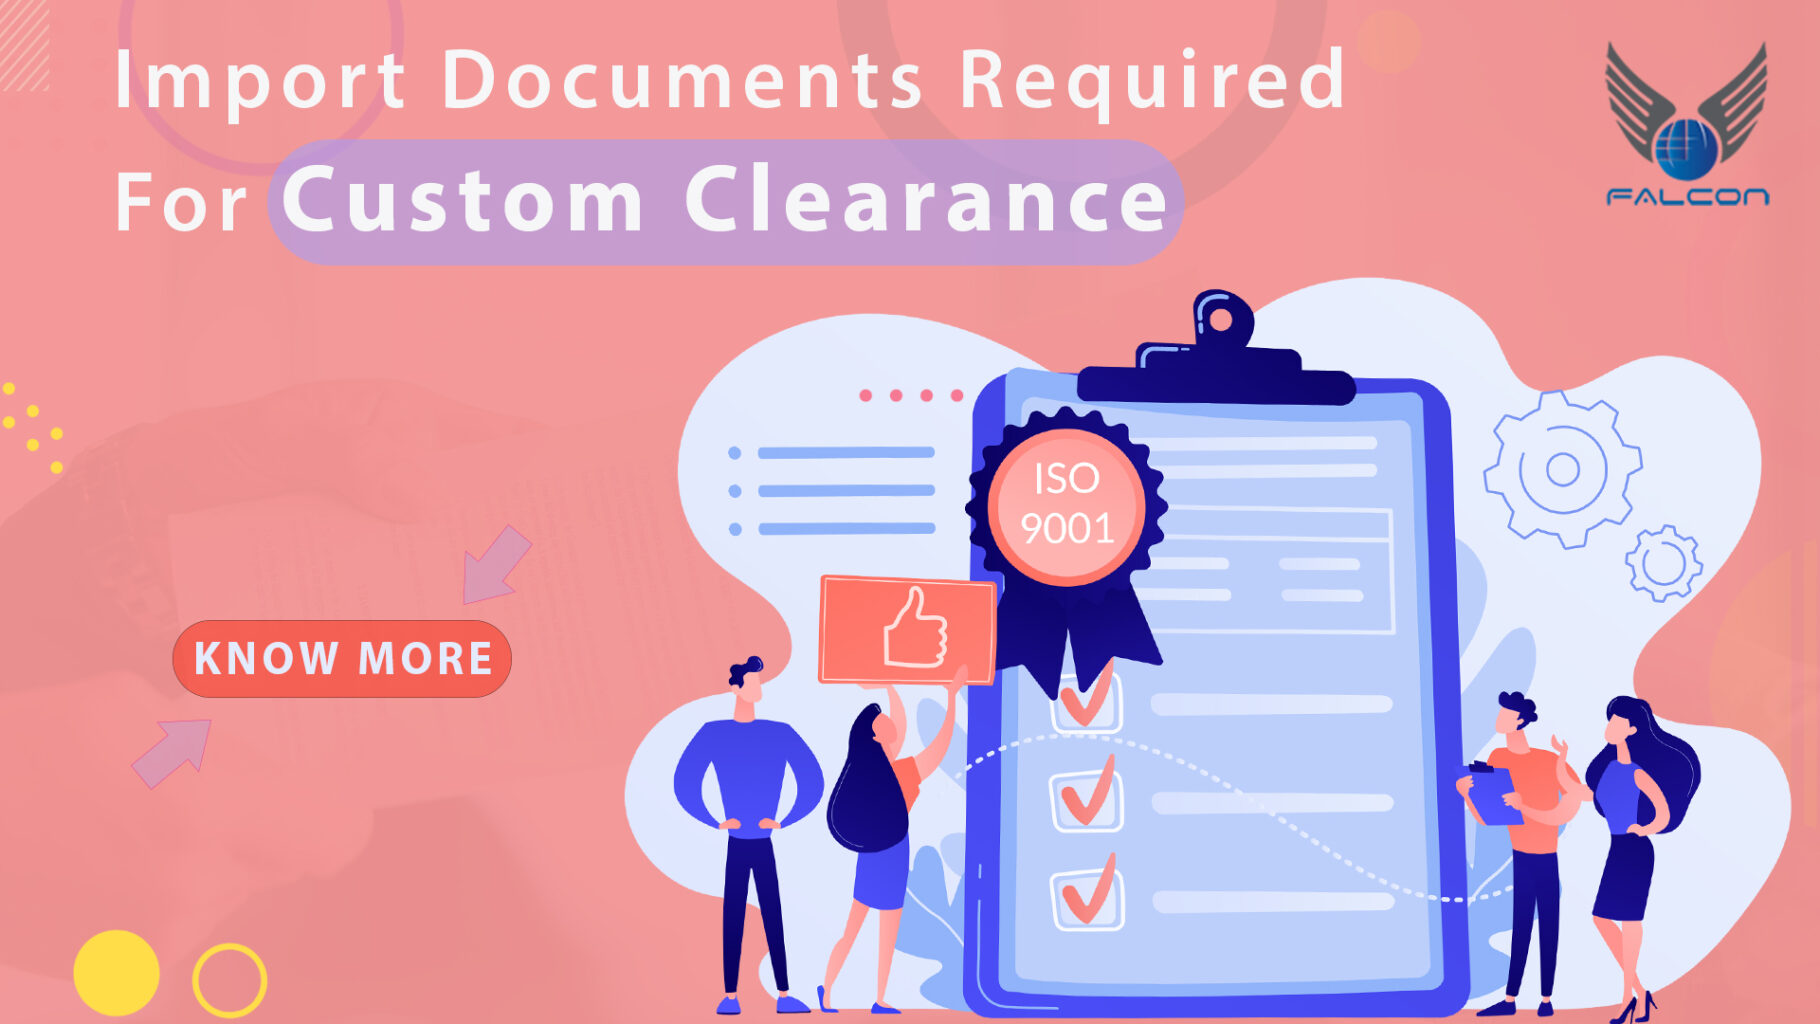 What Import Documents Required For Customs Clearance In India